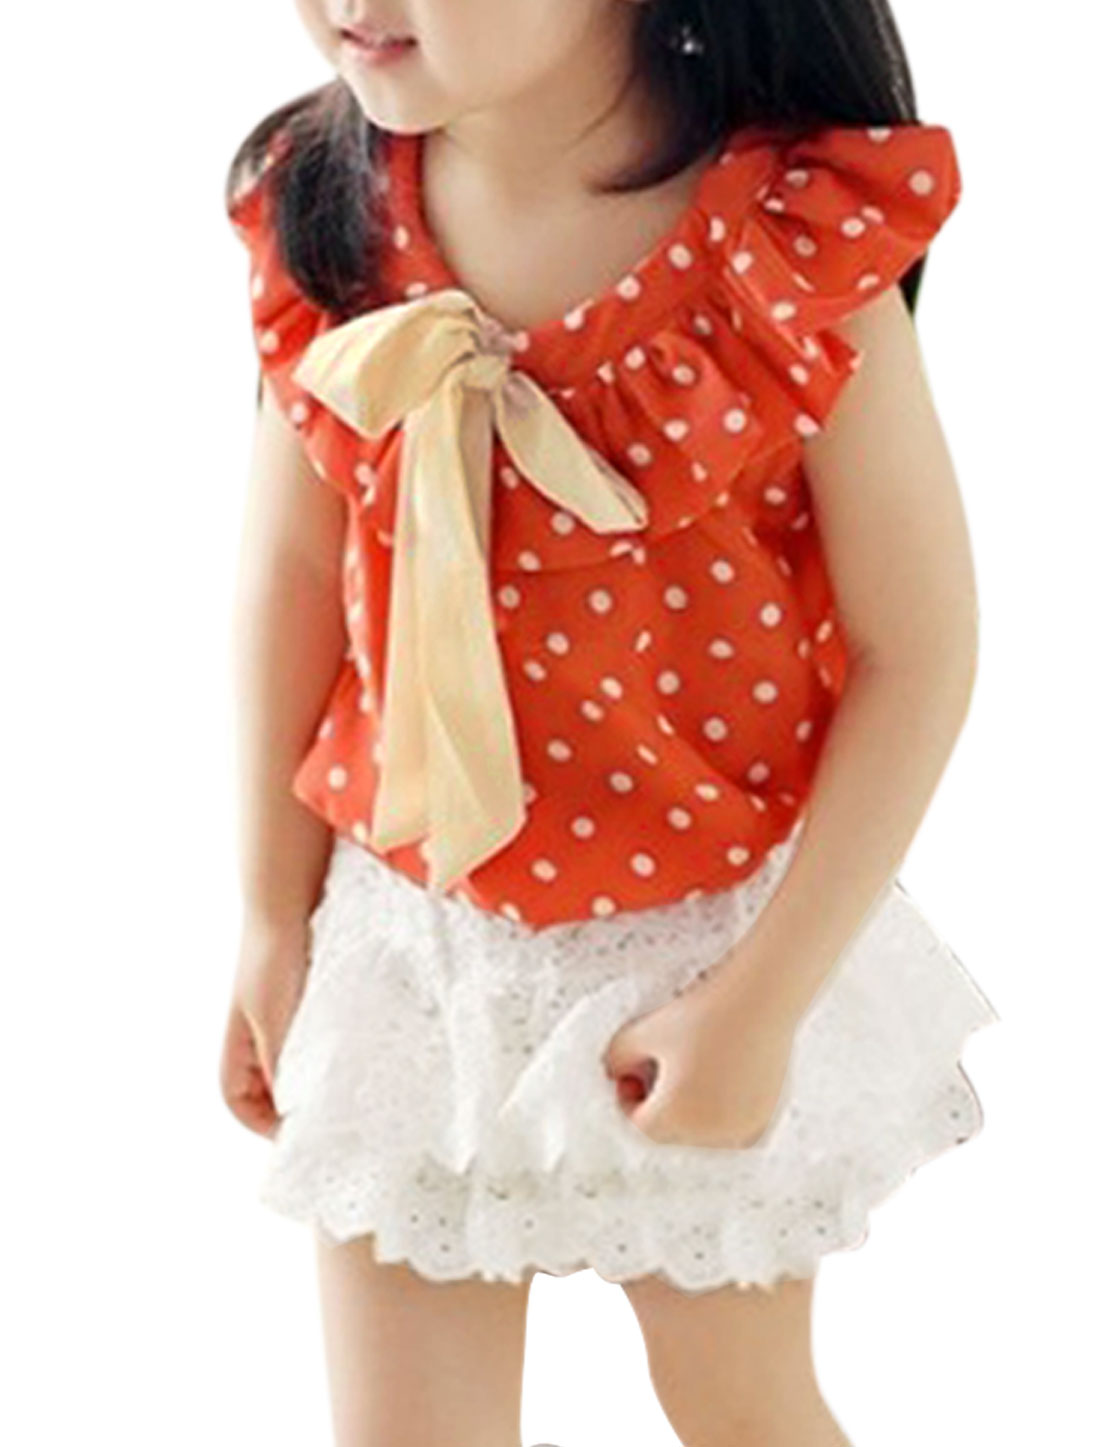 Child Girls Dots Pattern Decor Sleeveless Floral Design Crochet 2 Piece Set Orange White US Size 6